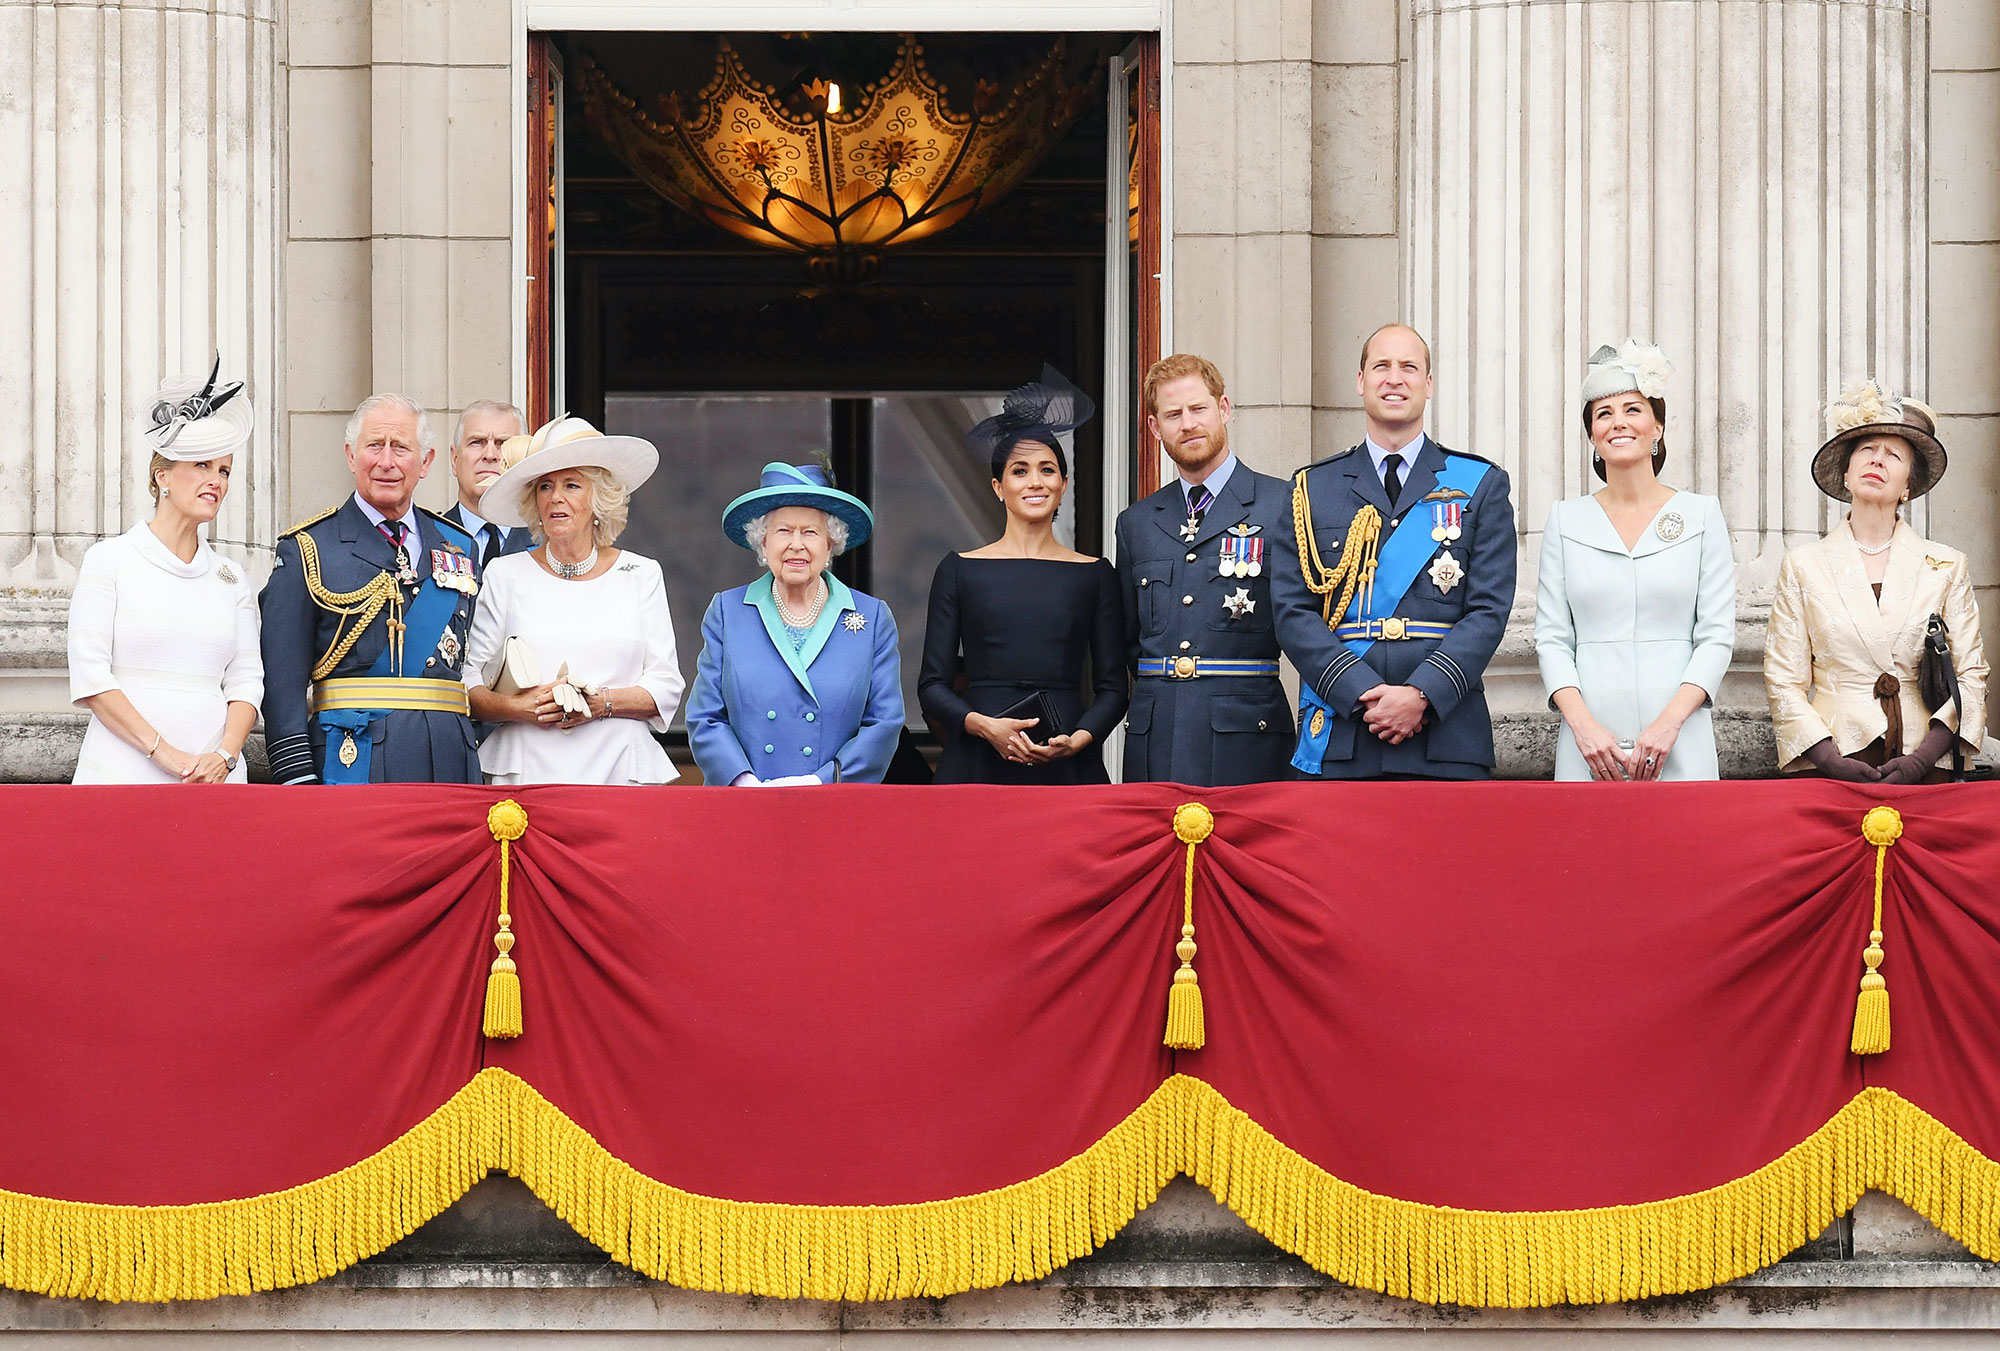 The Royal Family on the balcony of Buckingham Palace during the 100th Anniversary of the Royal Air Force Prince Harry Says Royal Family Cut Him Off Financially After Exit